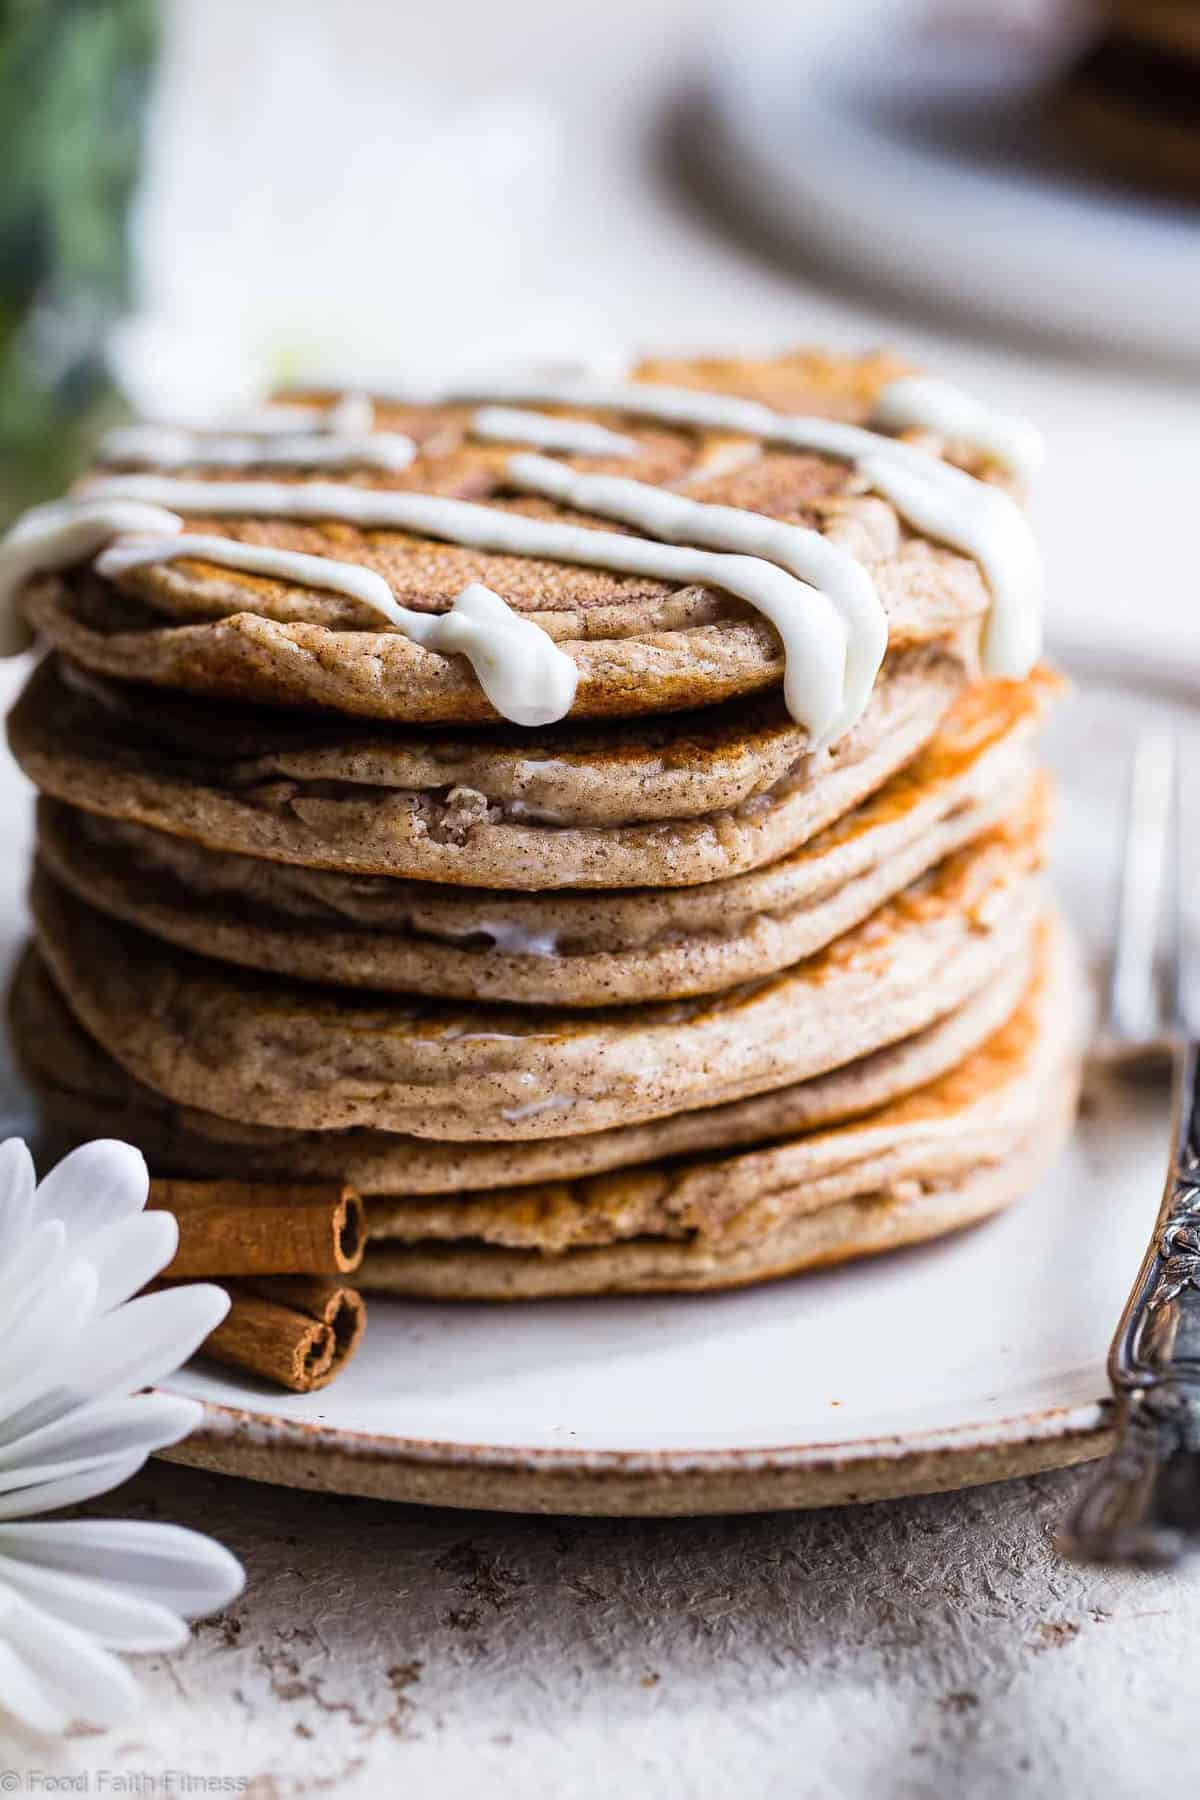 Easy Cinnamon Roll Gluten Free Low Carb Keto Protein Pancakes -These EASY, low carb high protein pancakes recipe is going to be your new favorite breakfast! Great for kids and adults and packed with 23g of protein!Who doesn't want to wake up to healthy cinnamon rolls?! | #Foodfaithfitness | #Keto #Lowcarb #Glutenfree #Healthy #Pancakes